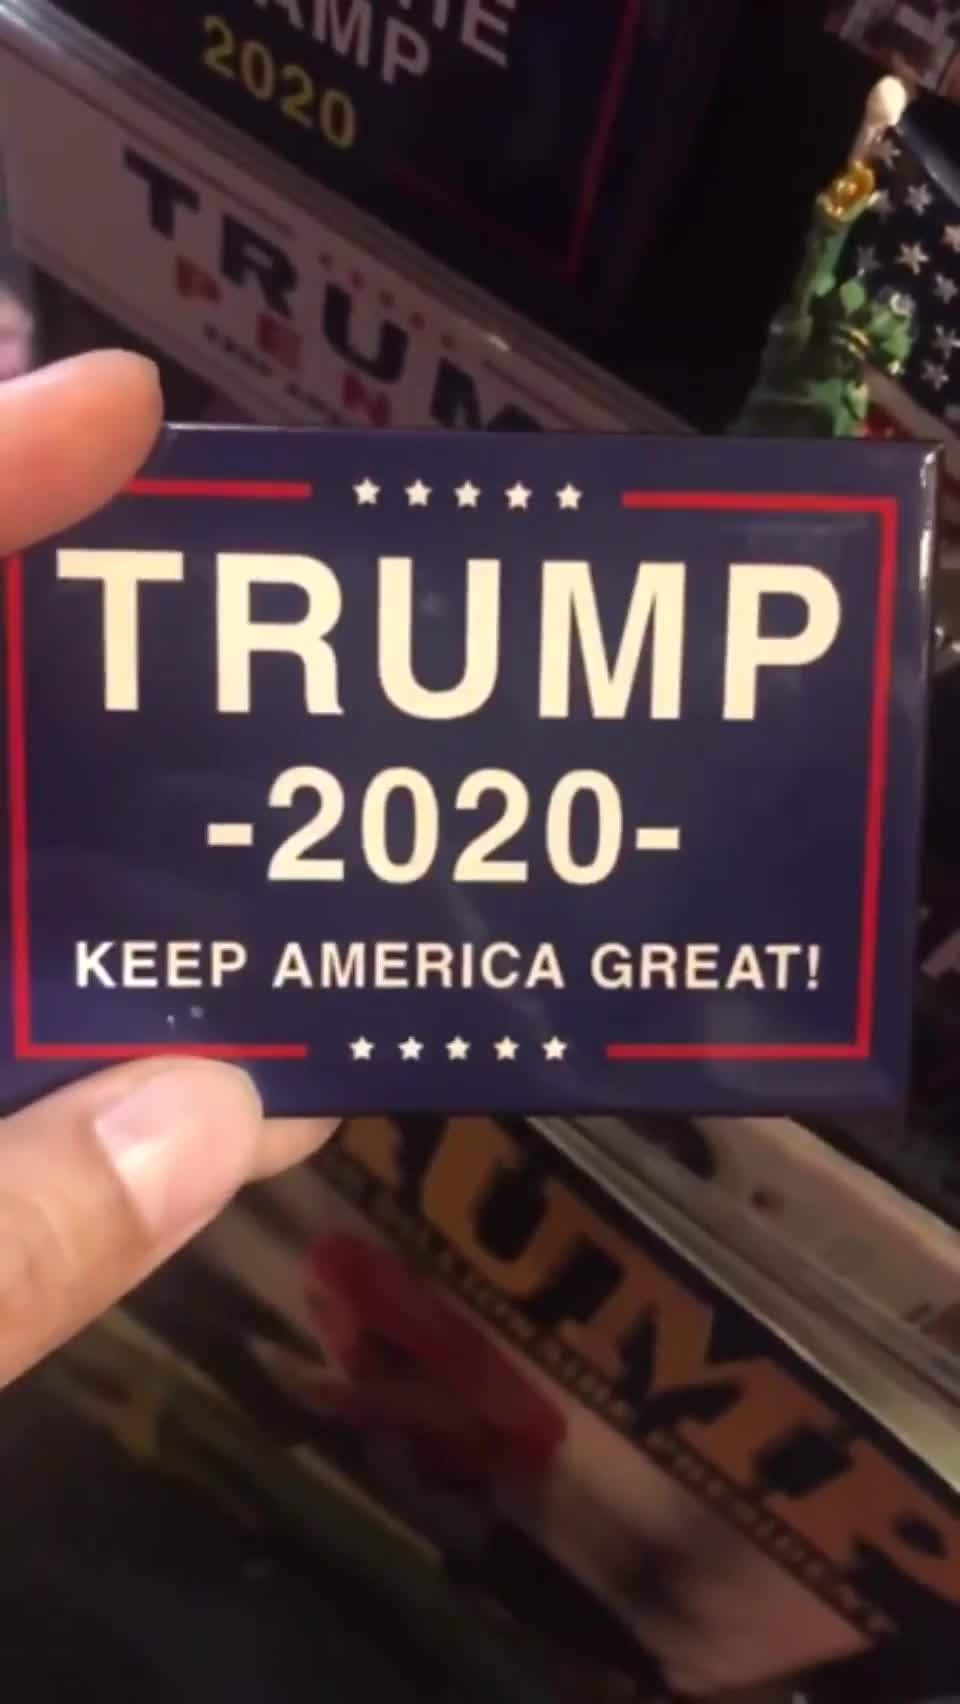 Trump 2020 - Made in Mexico